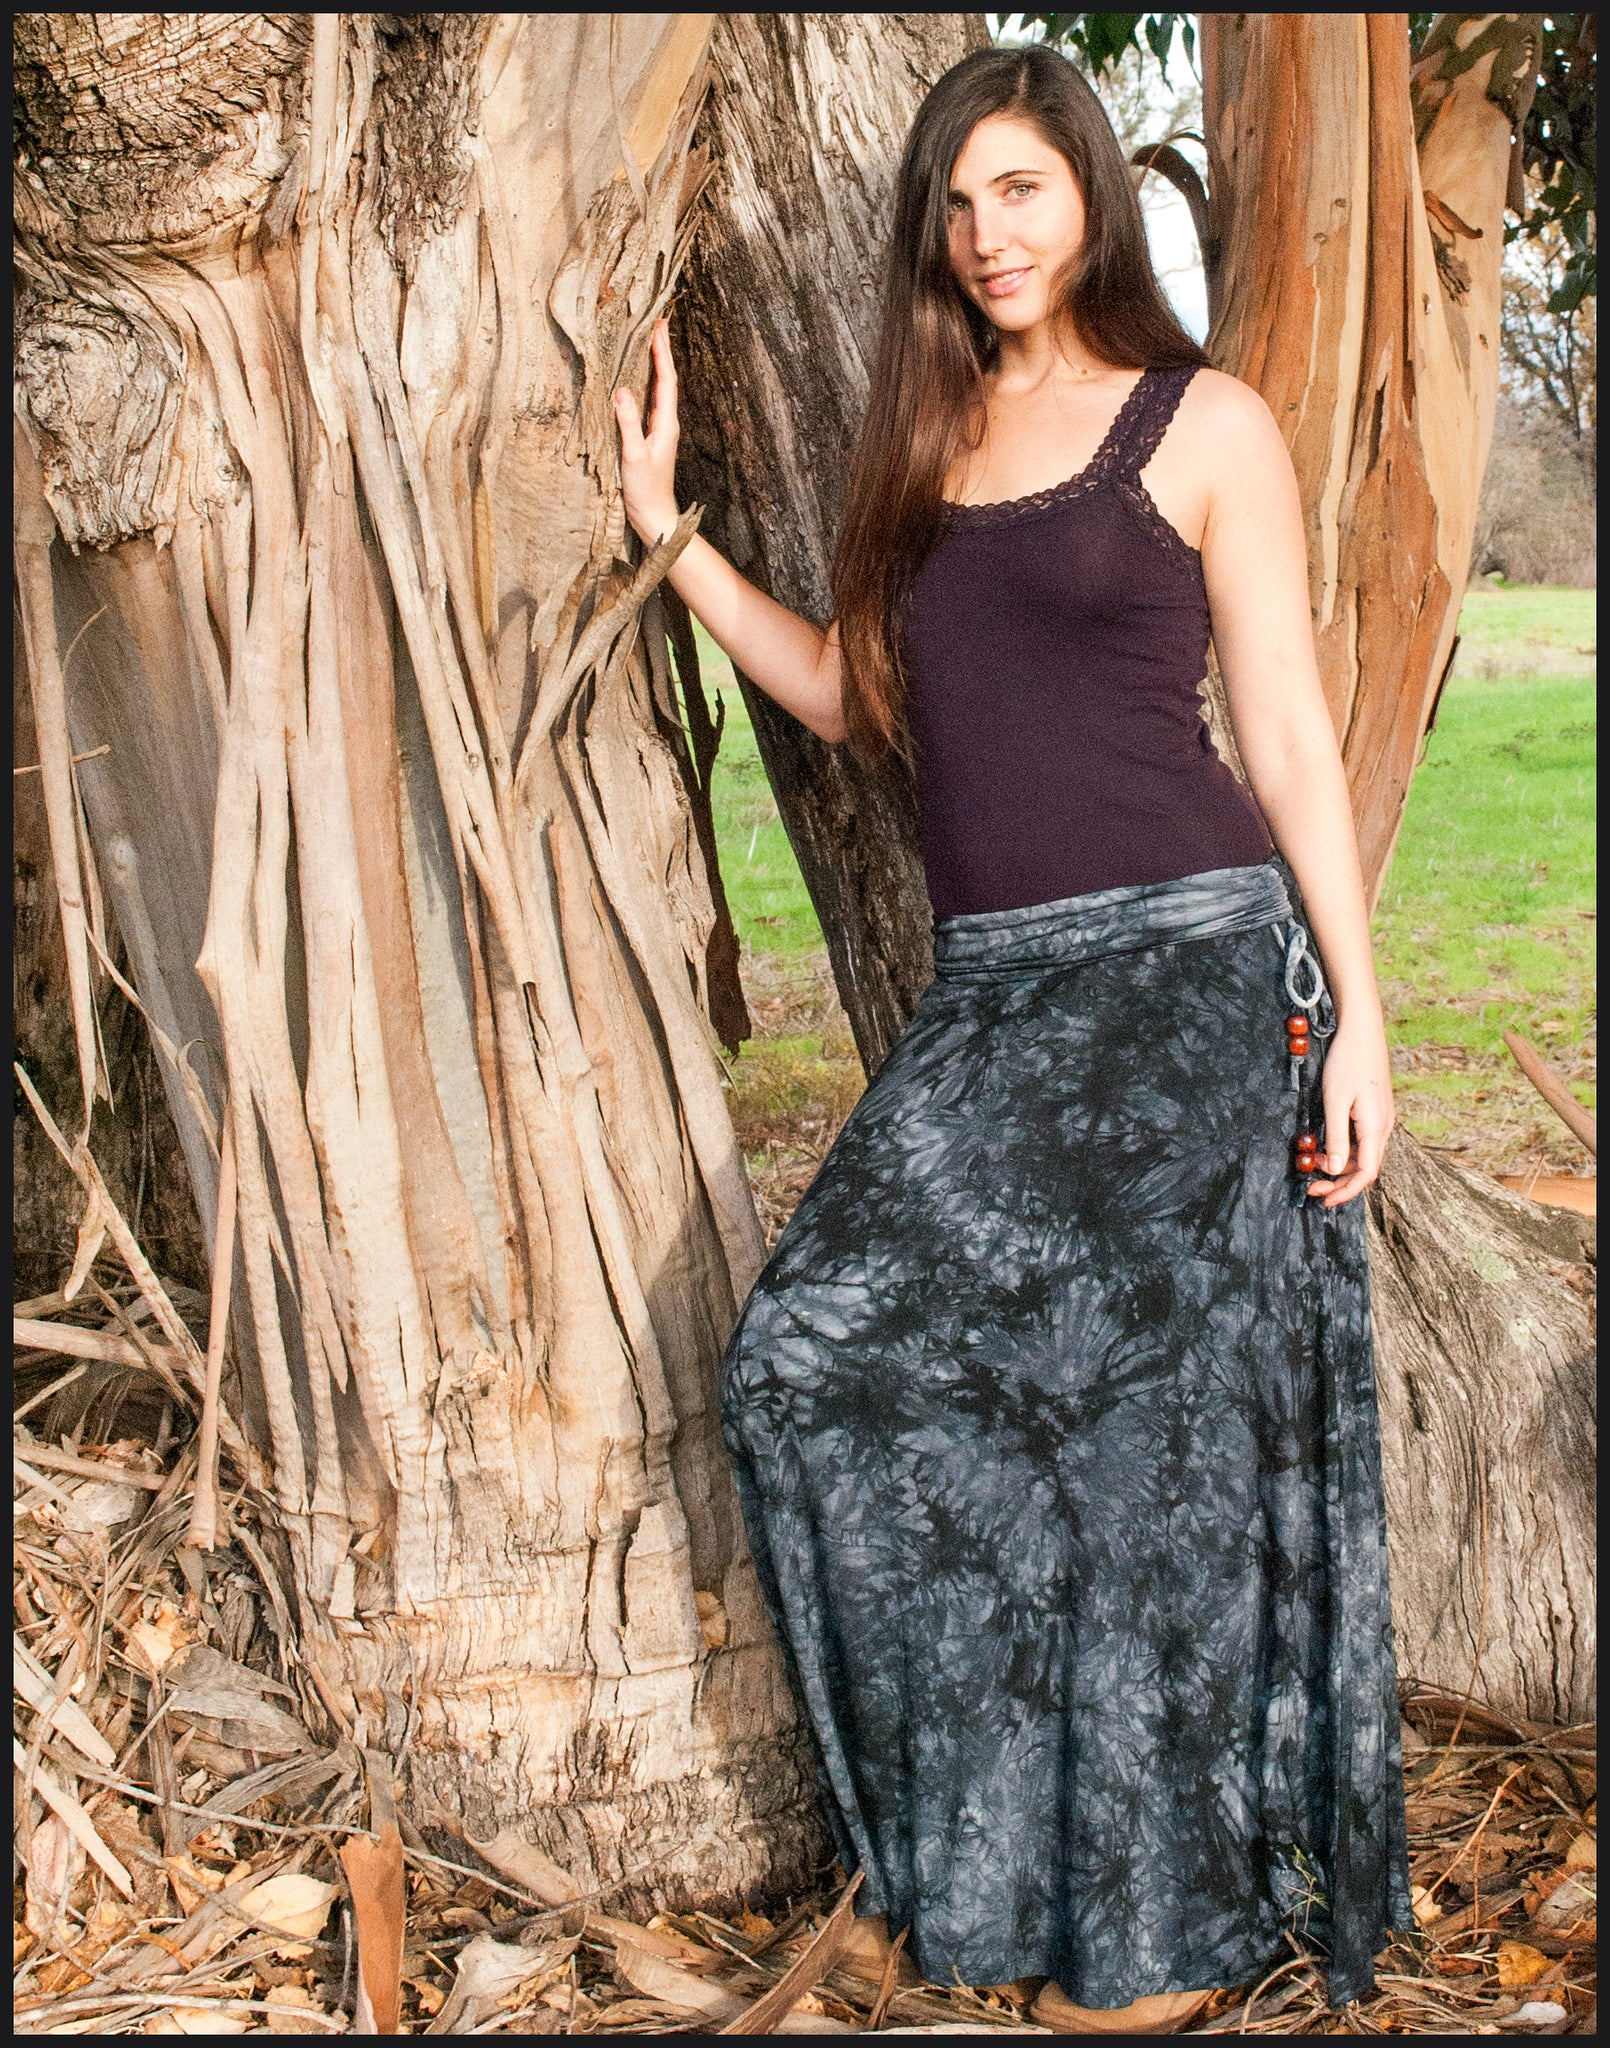 Beaded Flare skirt- Tie-dye skirts from Cali Kind